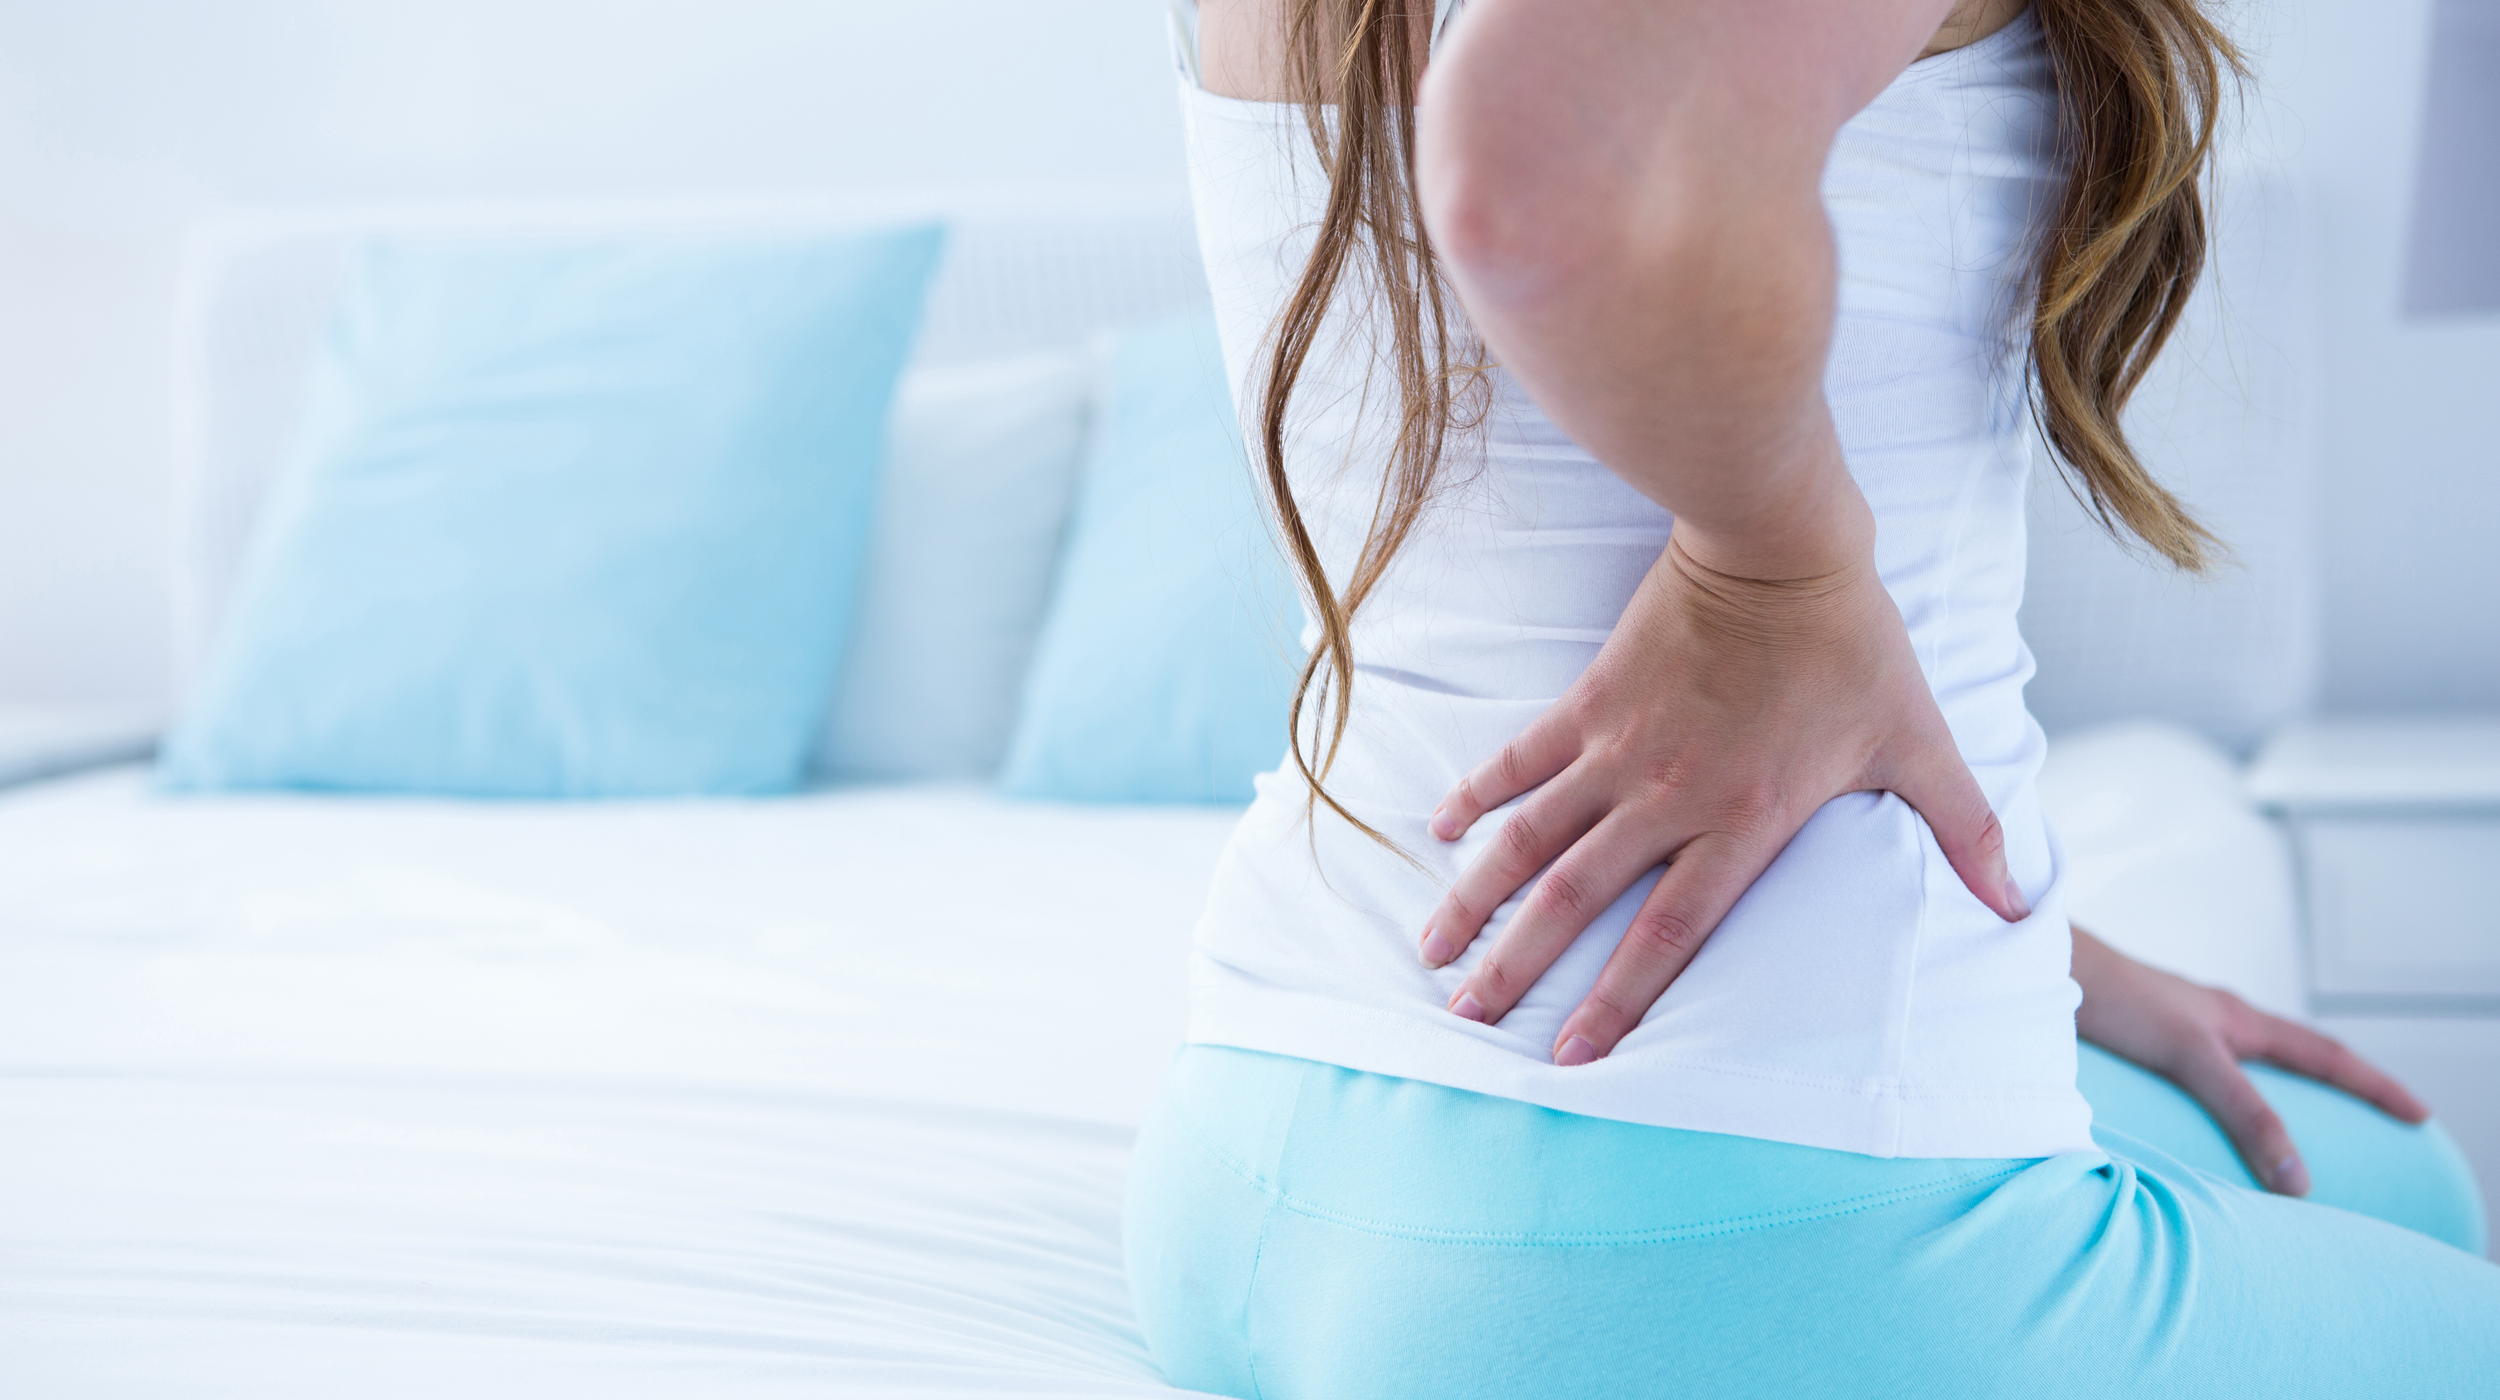 4 Things You Can do to Alleviate Your Back Pain